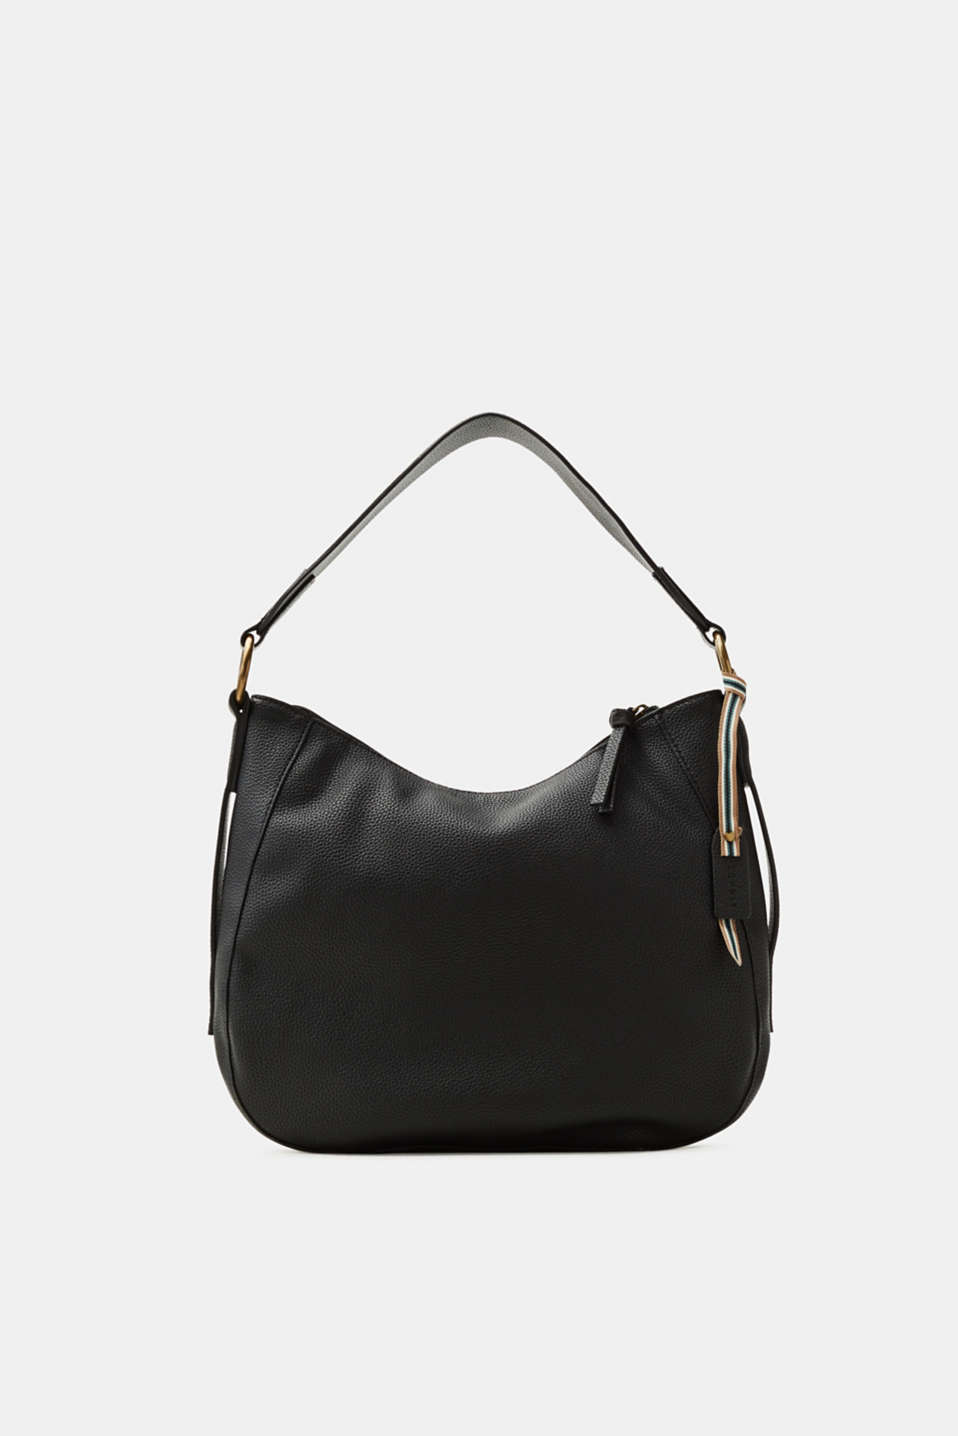 Esprit - Faux leather hobo bag